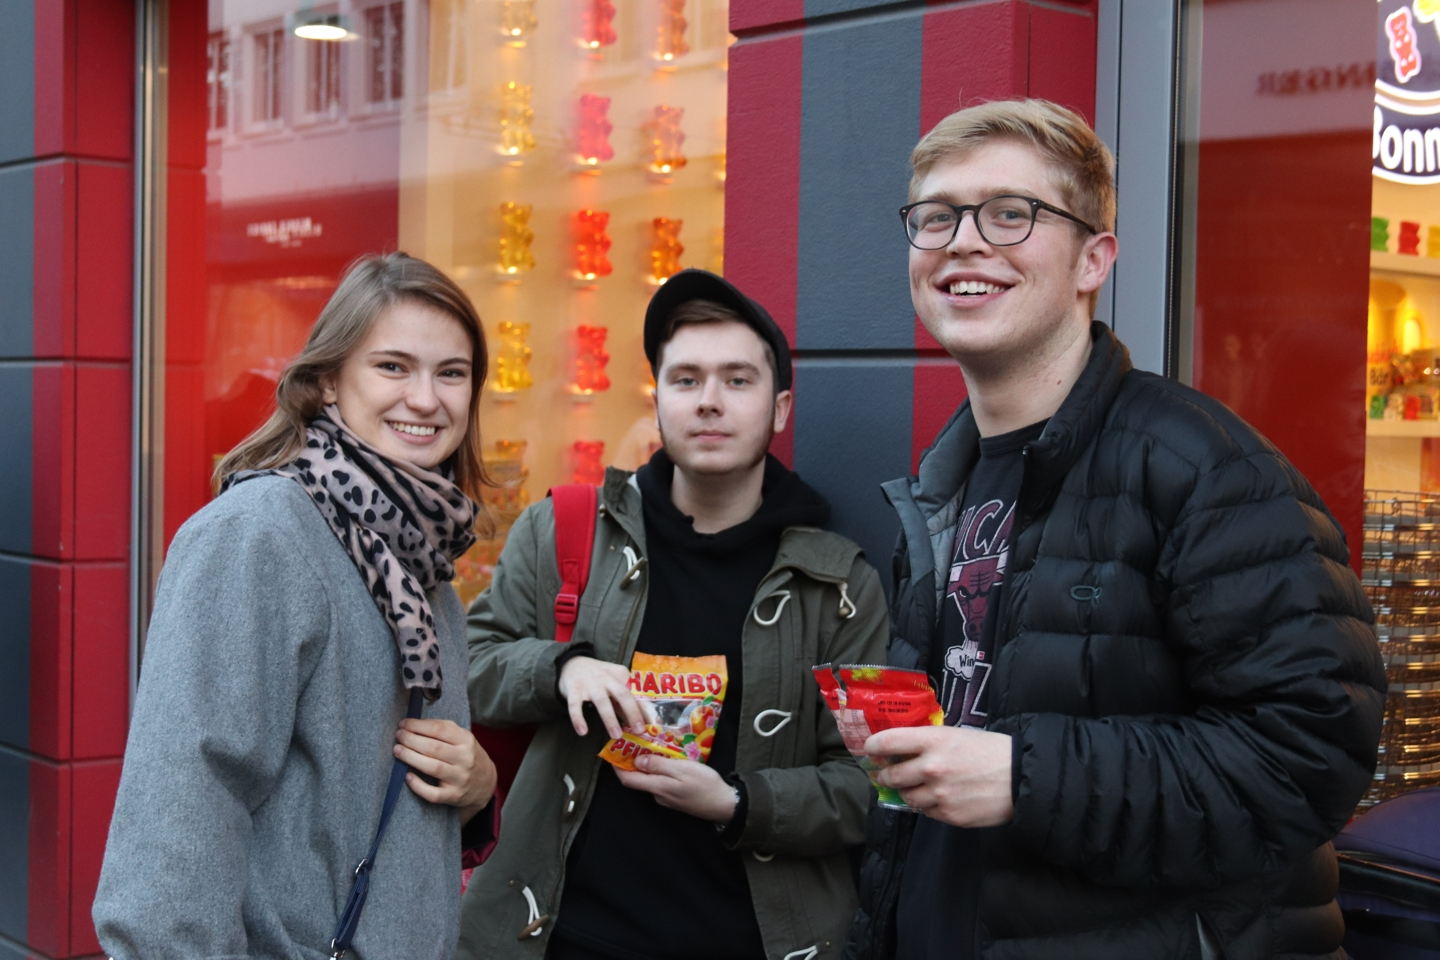 Three students holding bags of Haribo candy in front of the Haribo store.